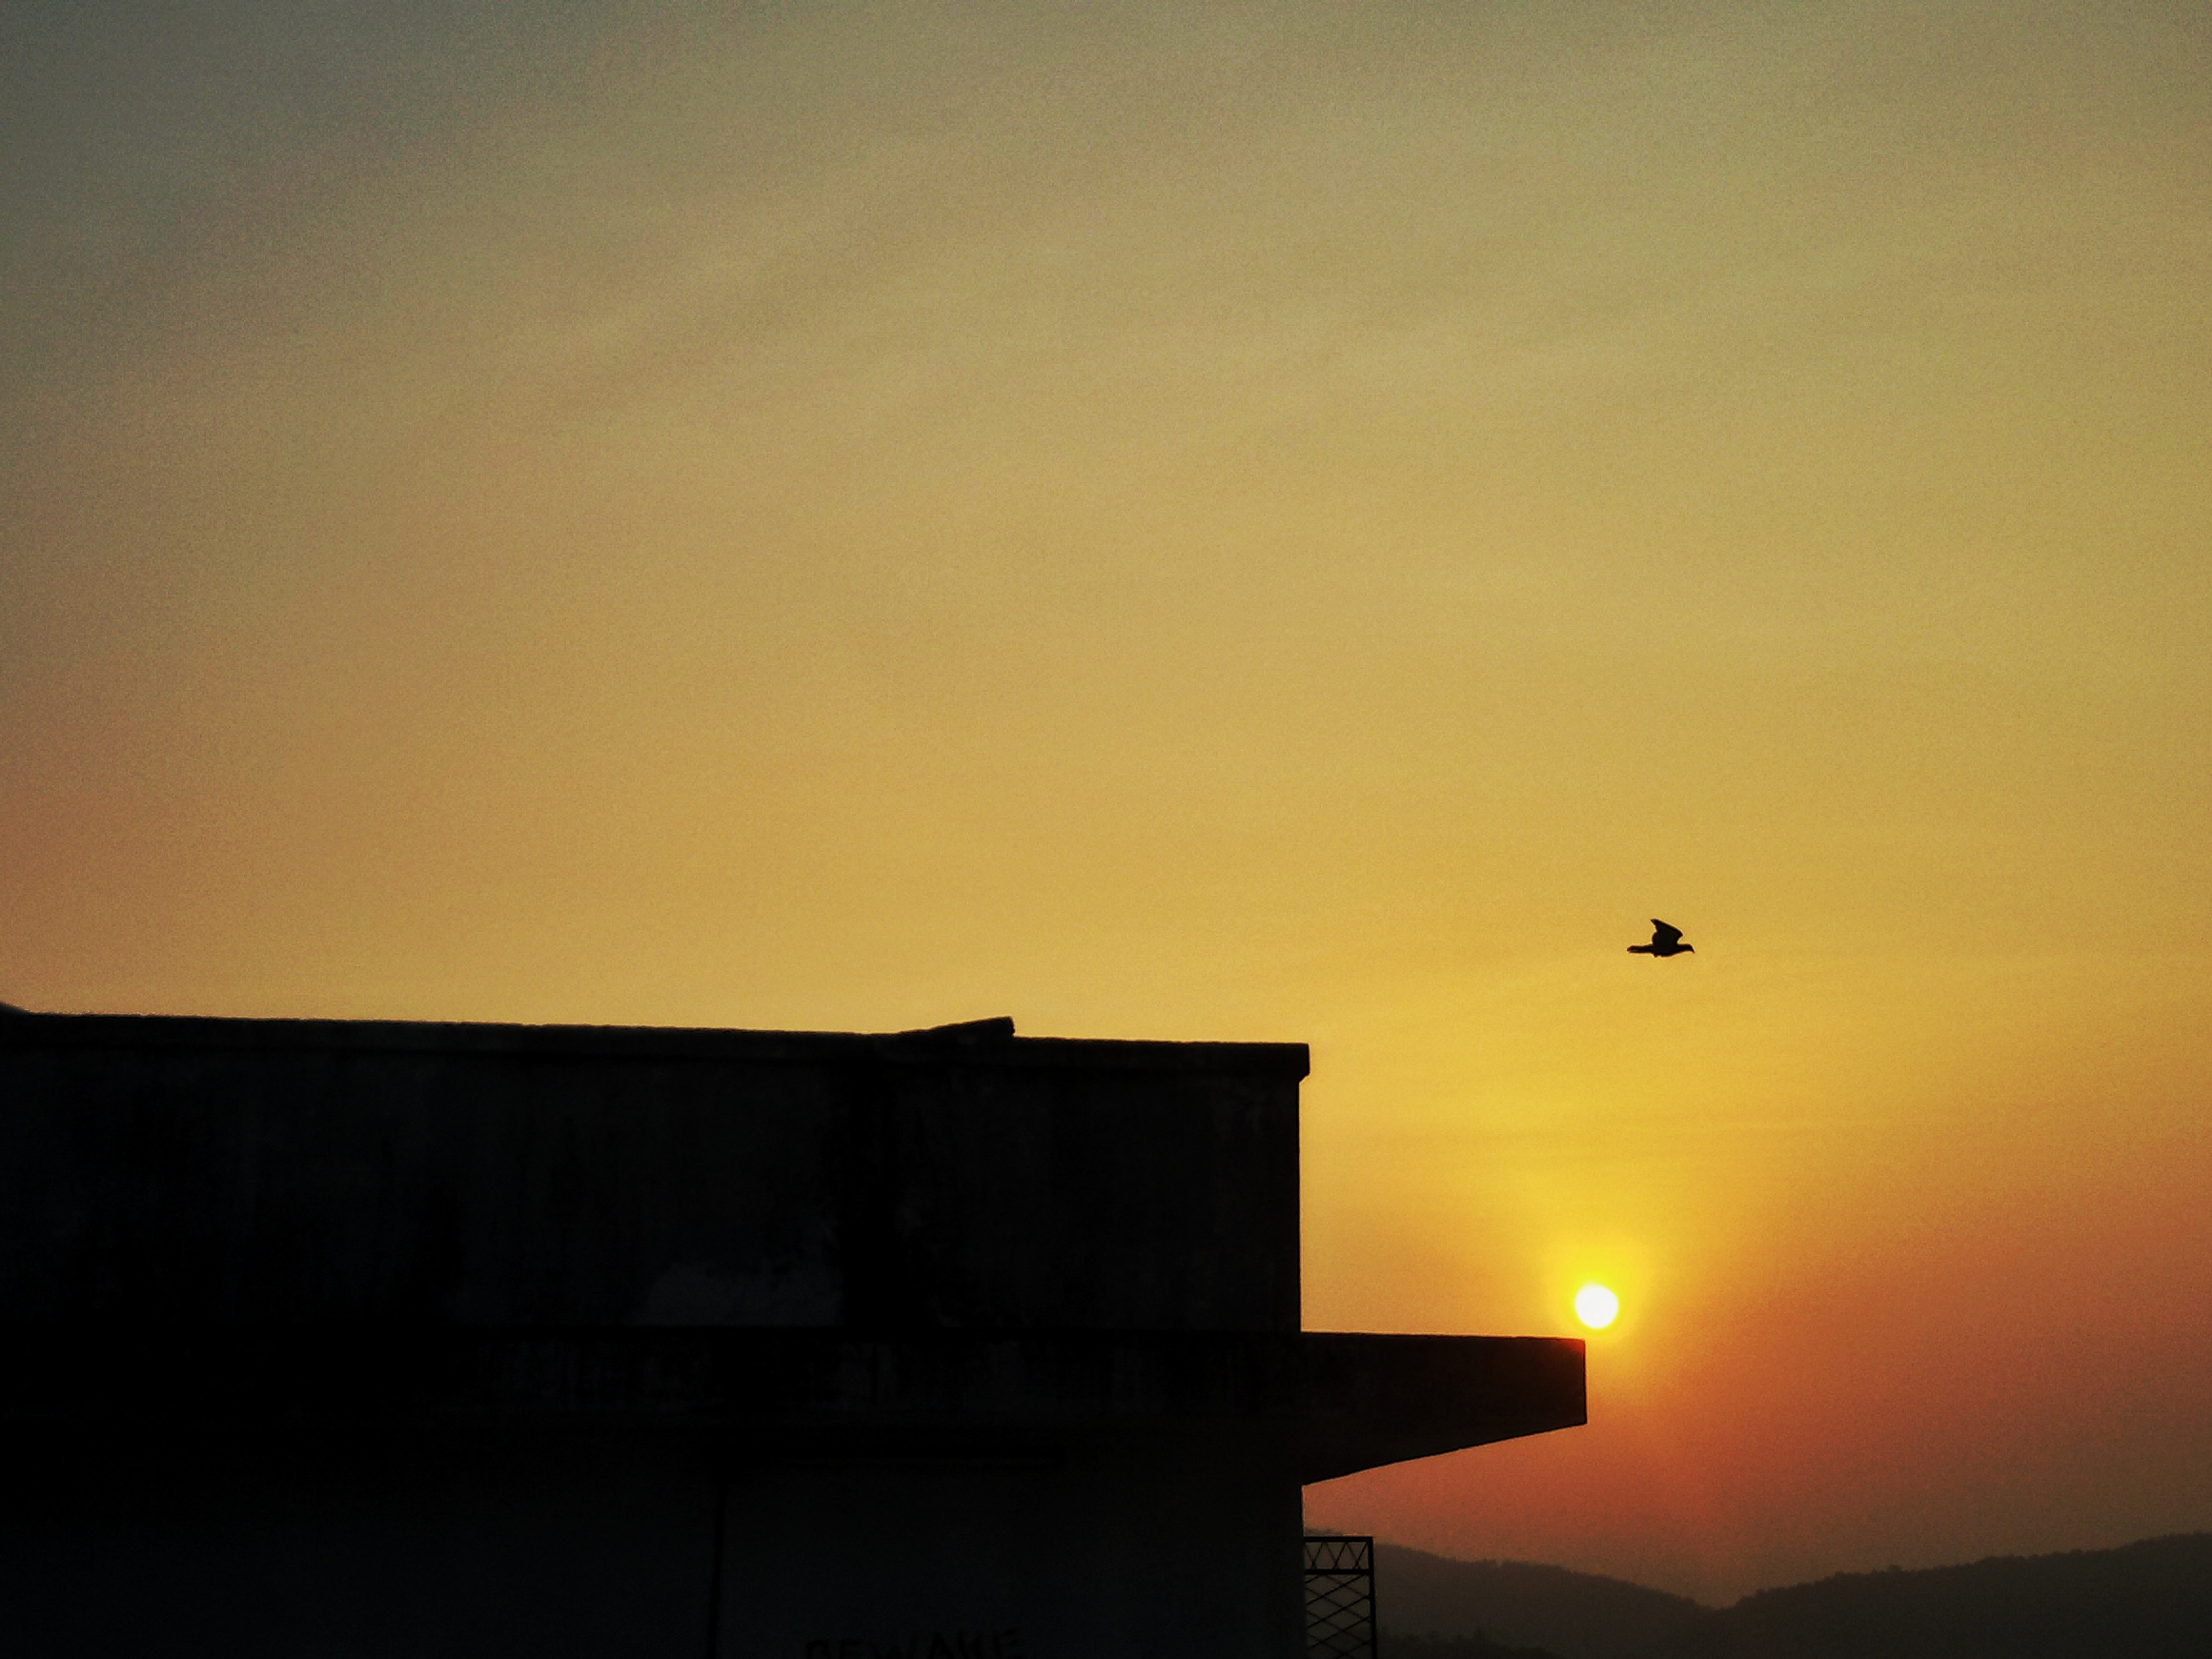 bird flying at the time of sunset